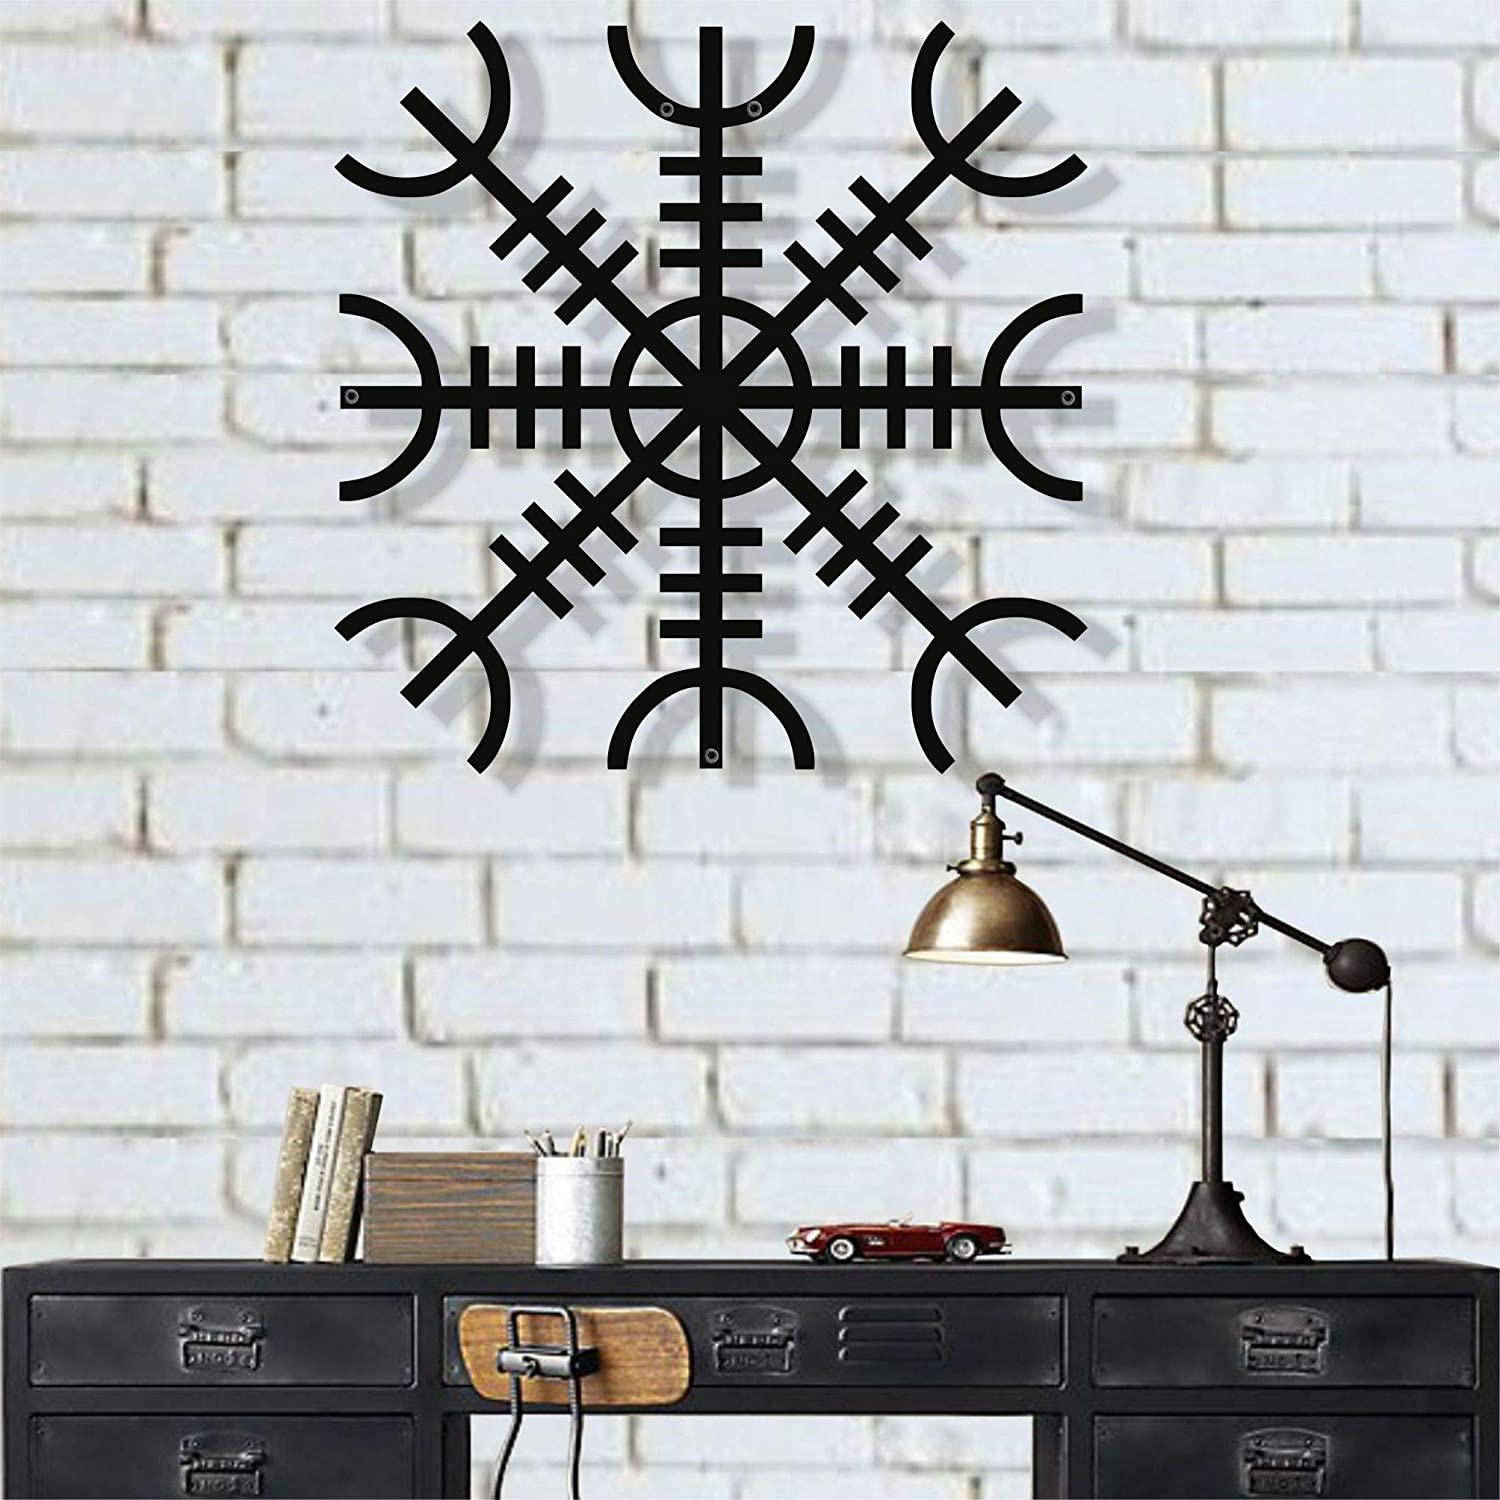 "DEKADRON Metal Wall Art, Metal Viking Decor, Nordic Mythology Vegvisir Runes and Symbols, Metal Wall Decor, Norse, Home Decor, Interior Decoration (18"" W x 18"" H / 45x45 cm)"